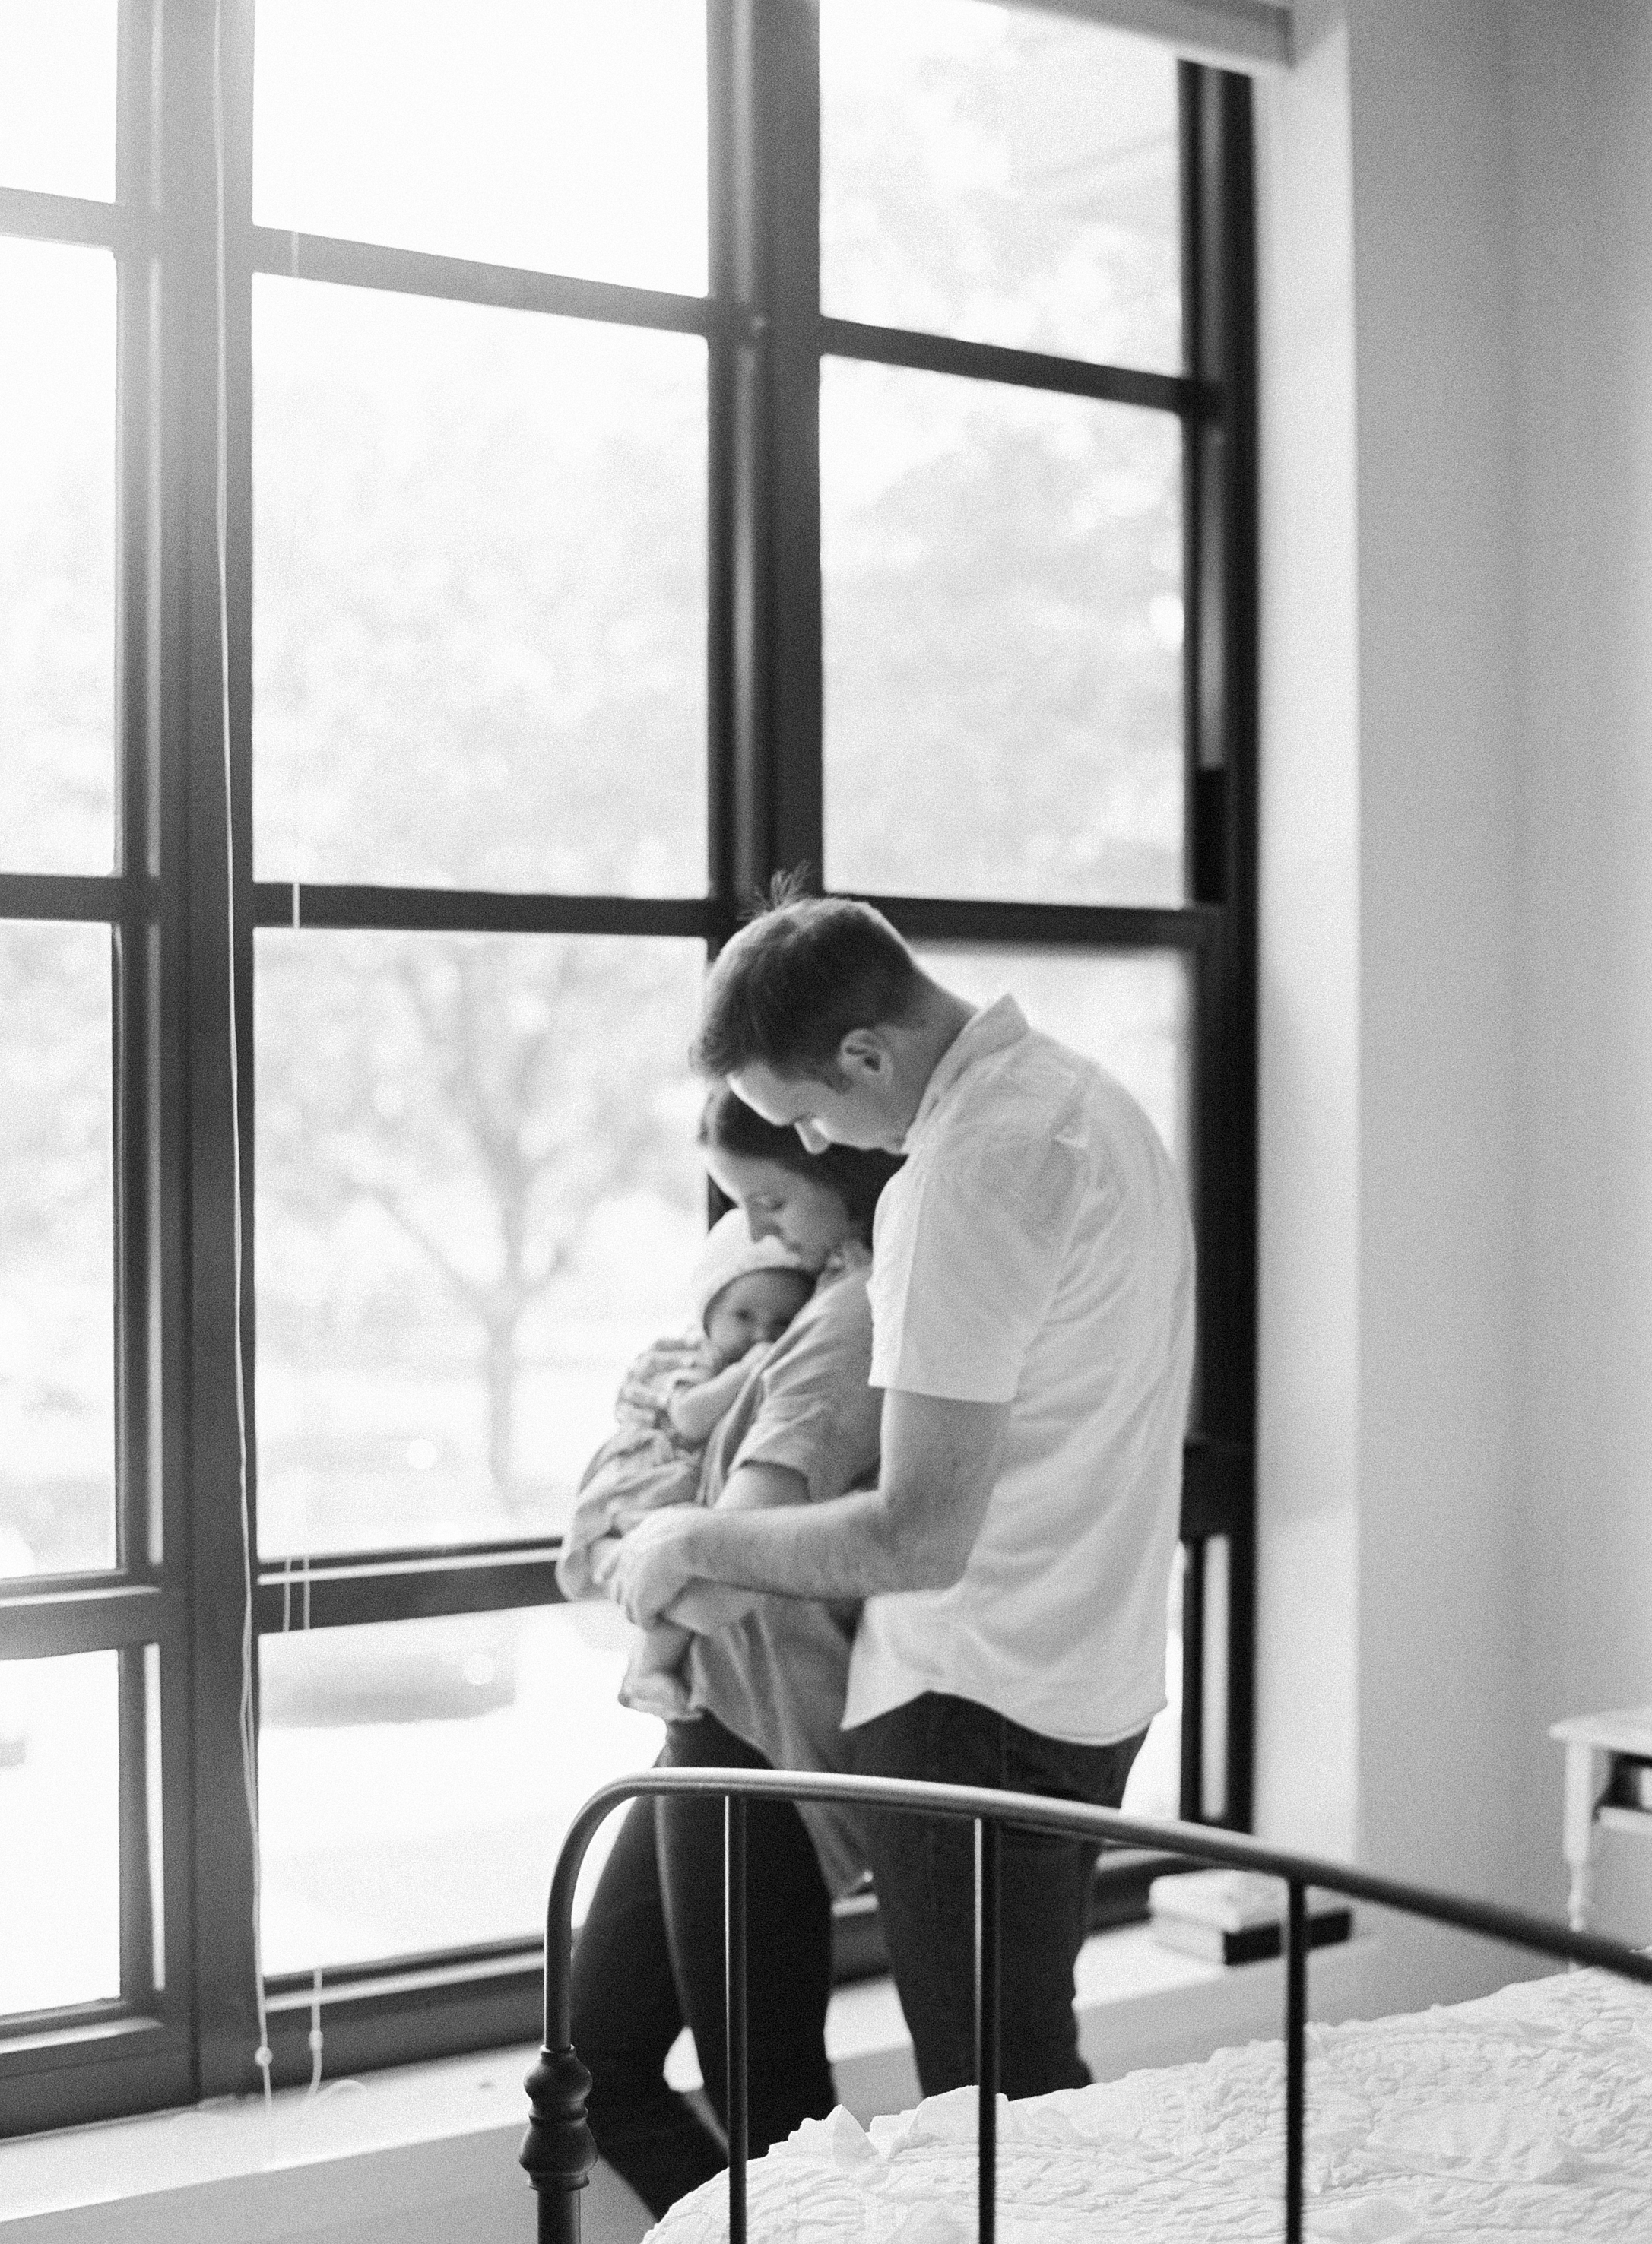 Meghan Mehan Photography - San Francisco Newborn and Family Photographer 034.jpg